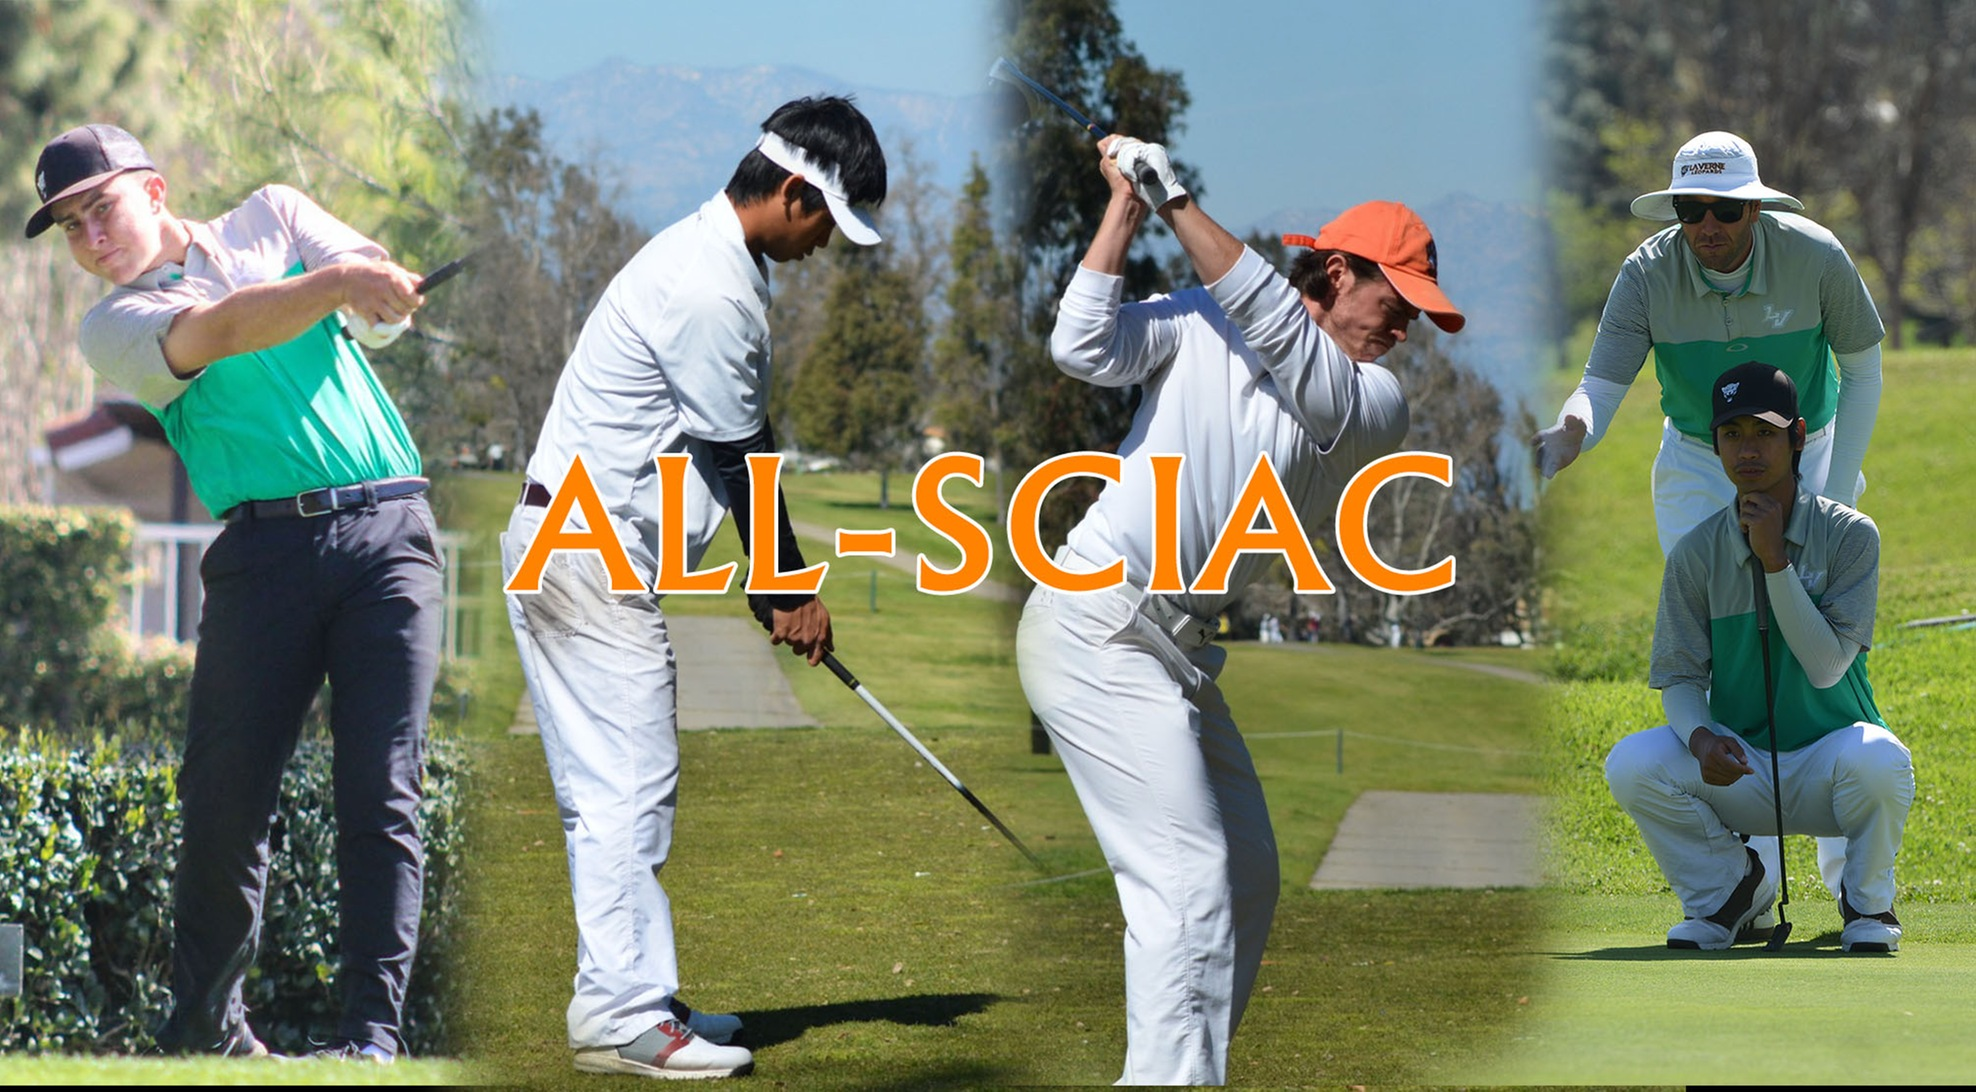 Hussein, Phanomchai, Davis named All-SCIAC, Riehle Coaching Staff of the Year